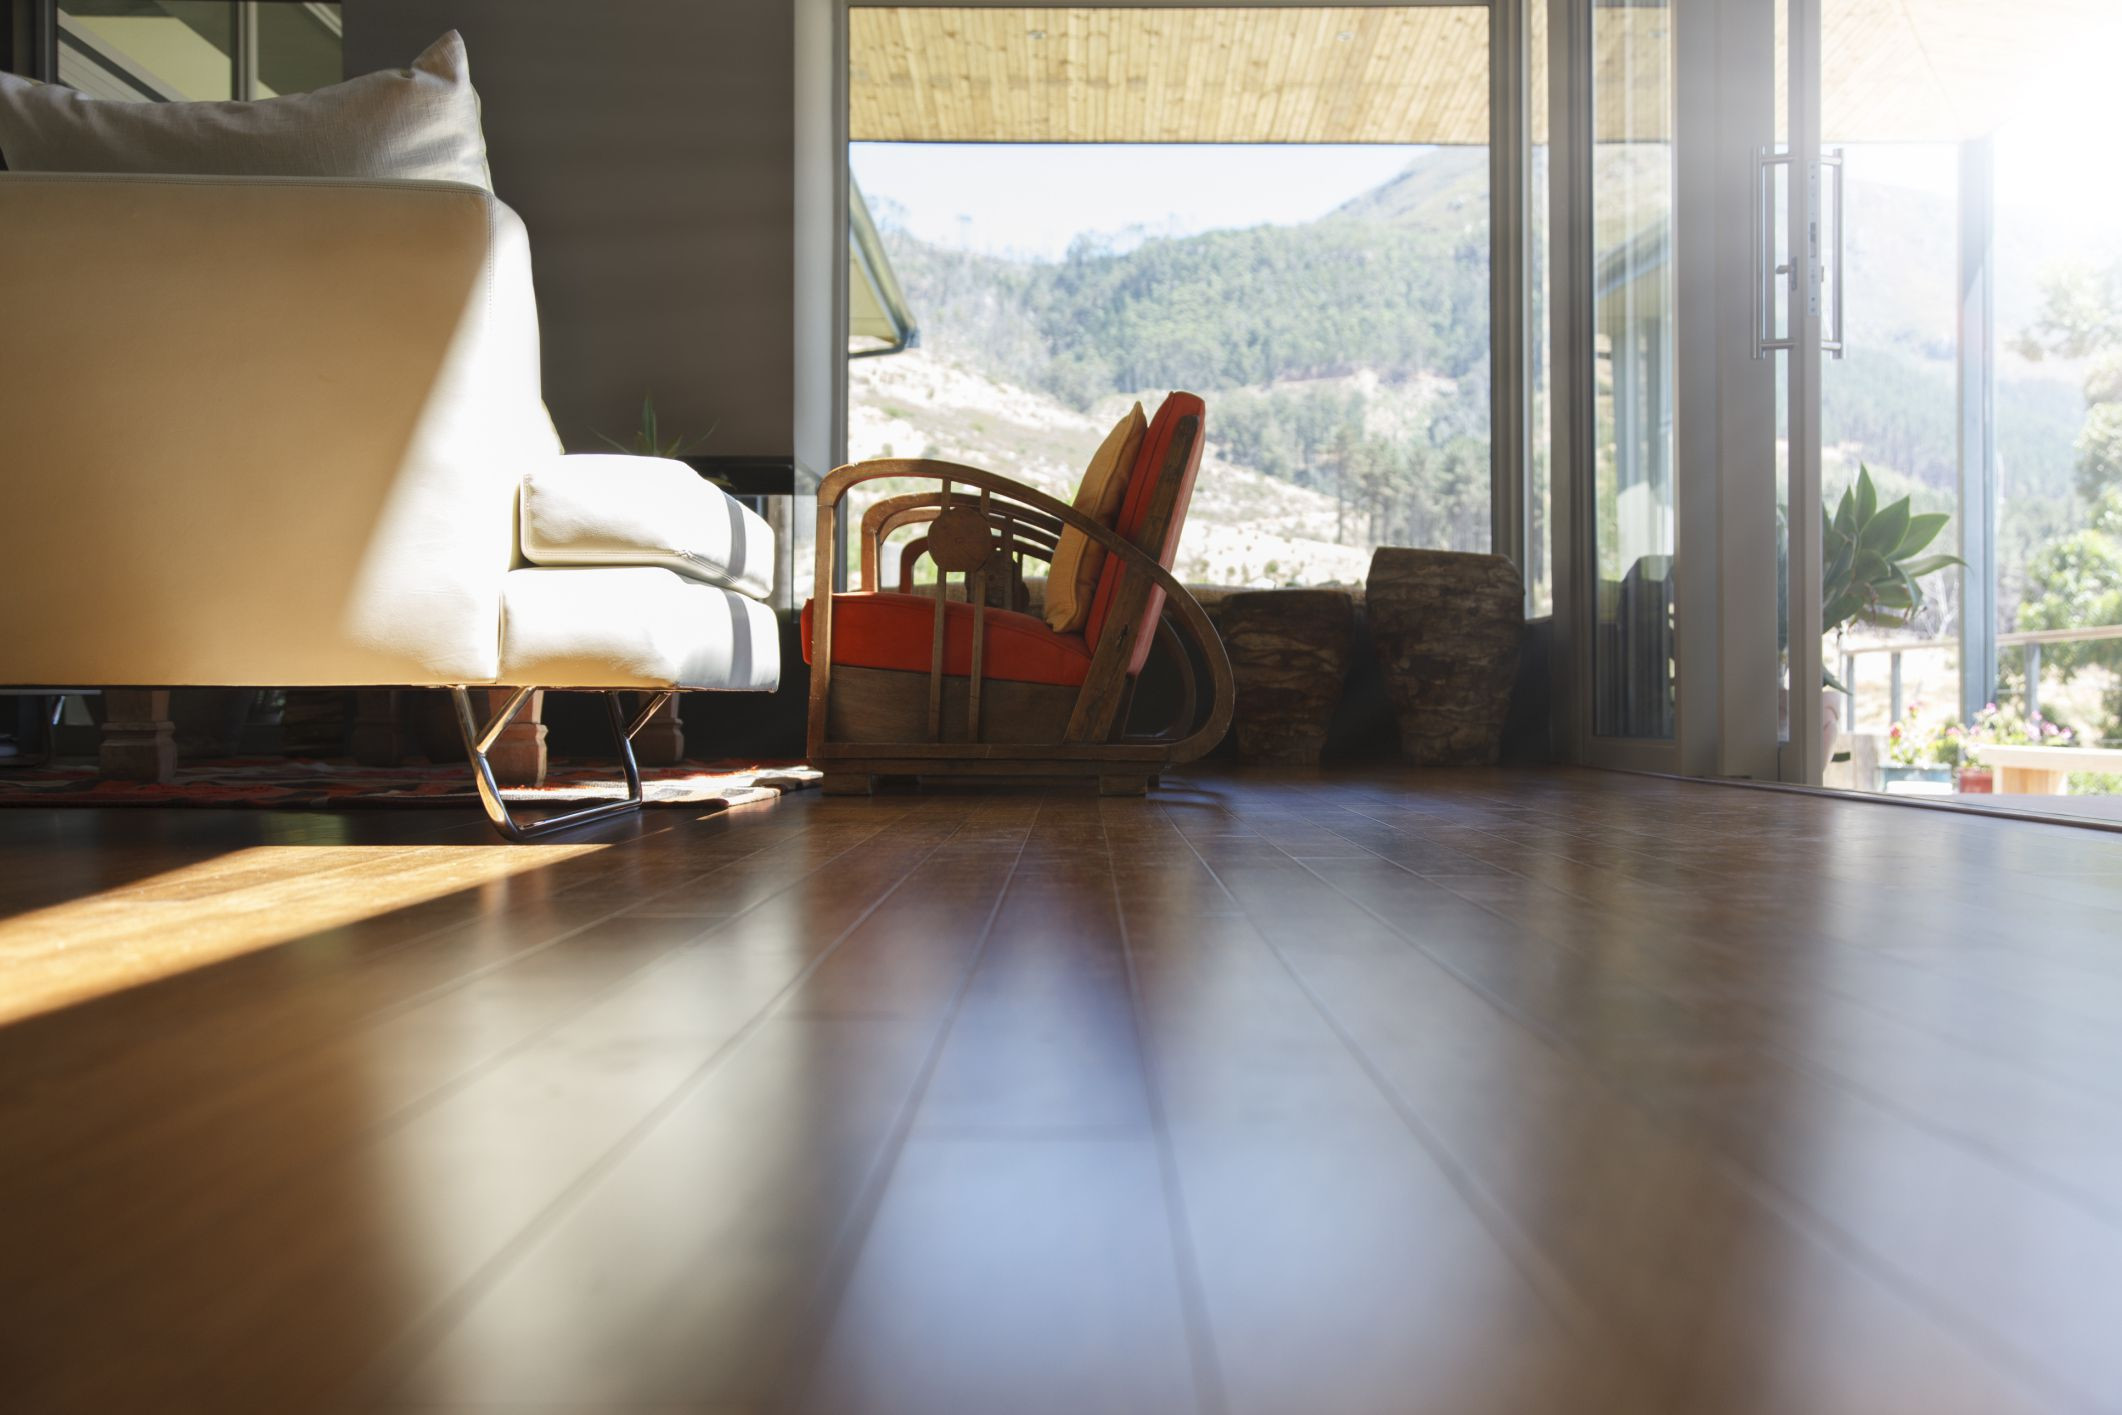 hardwood floor epoxy filler of floating floors basics types and pros and cons with exotic hardwood flooring 525439899 56a49d3a3df78cf77283453d